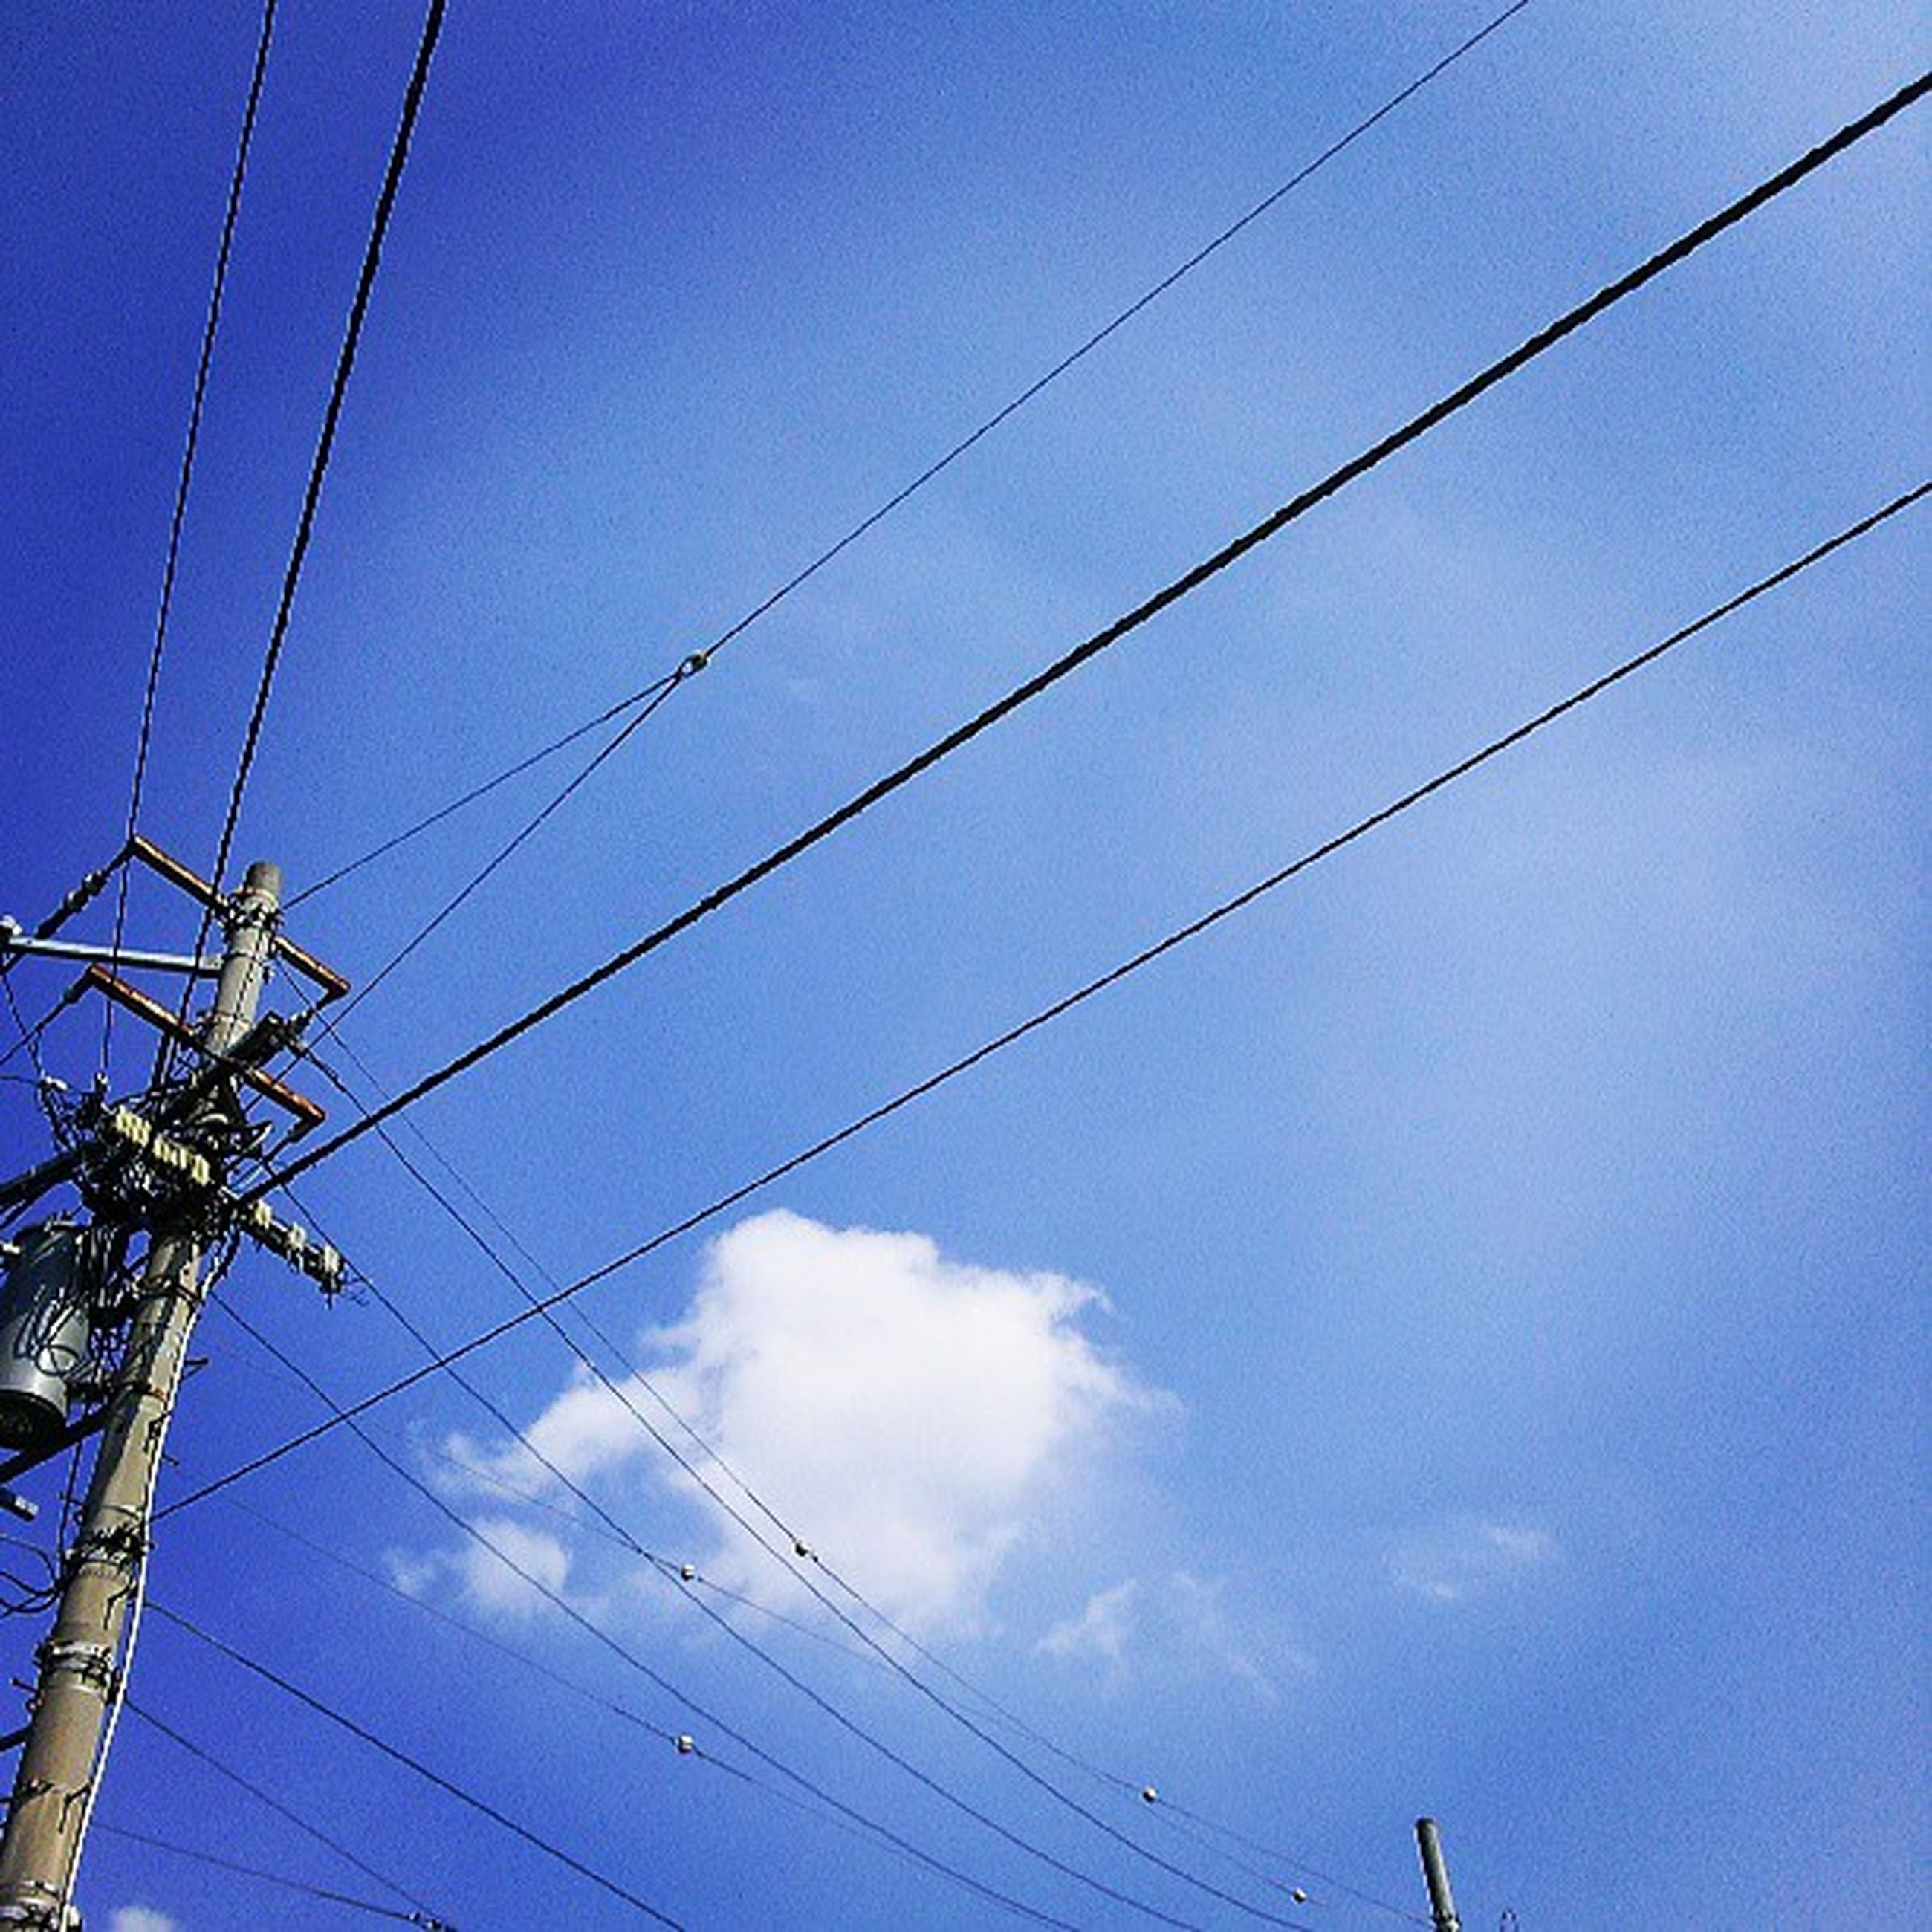 power line, low angle view, cable, electricity, power supply, connection, electricity pylon, sky, fuel and power generation, technology, power cable, blue, wire, silhouette, pole, cloud, complexity, cloud - sky, outdoors, no people